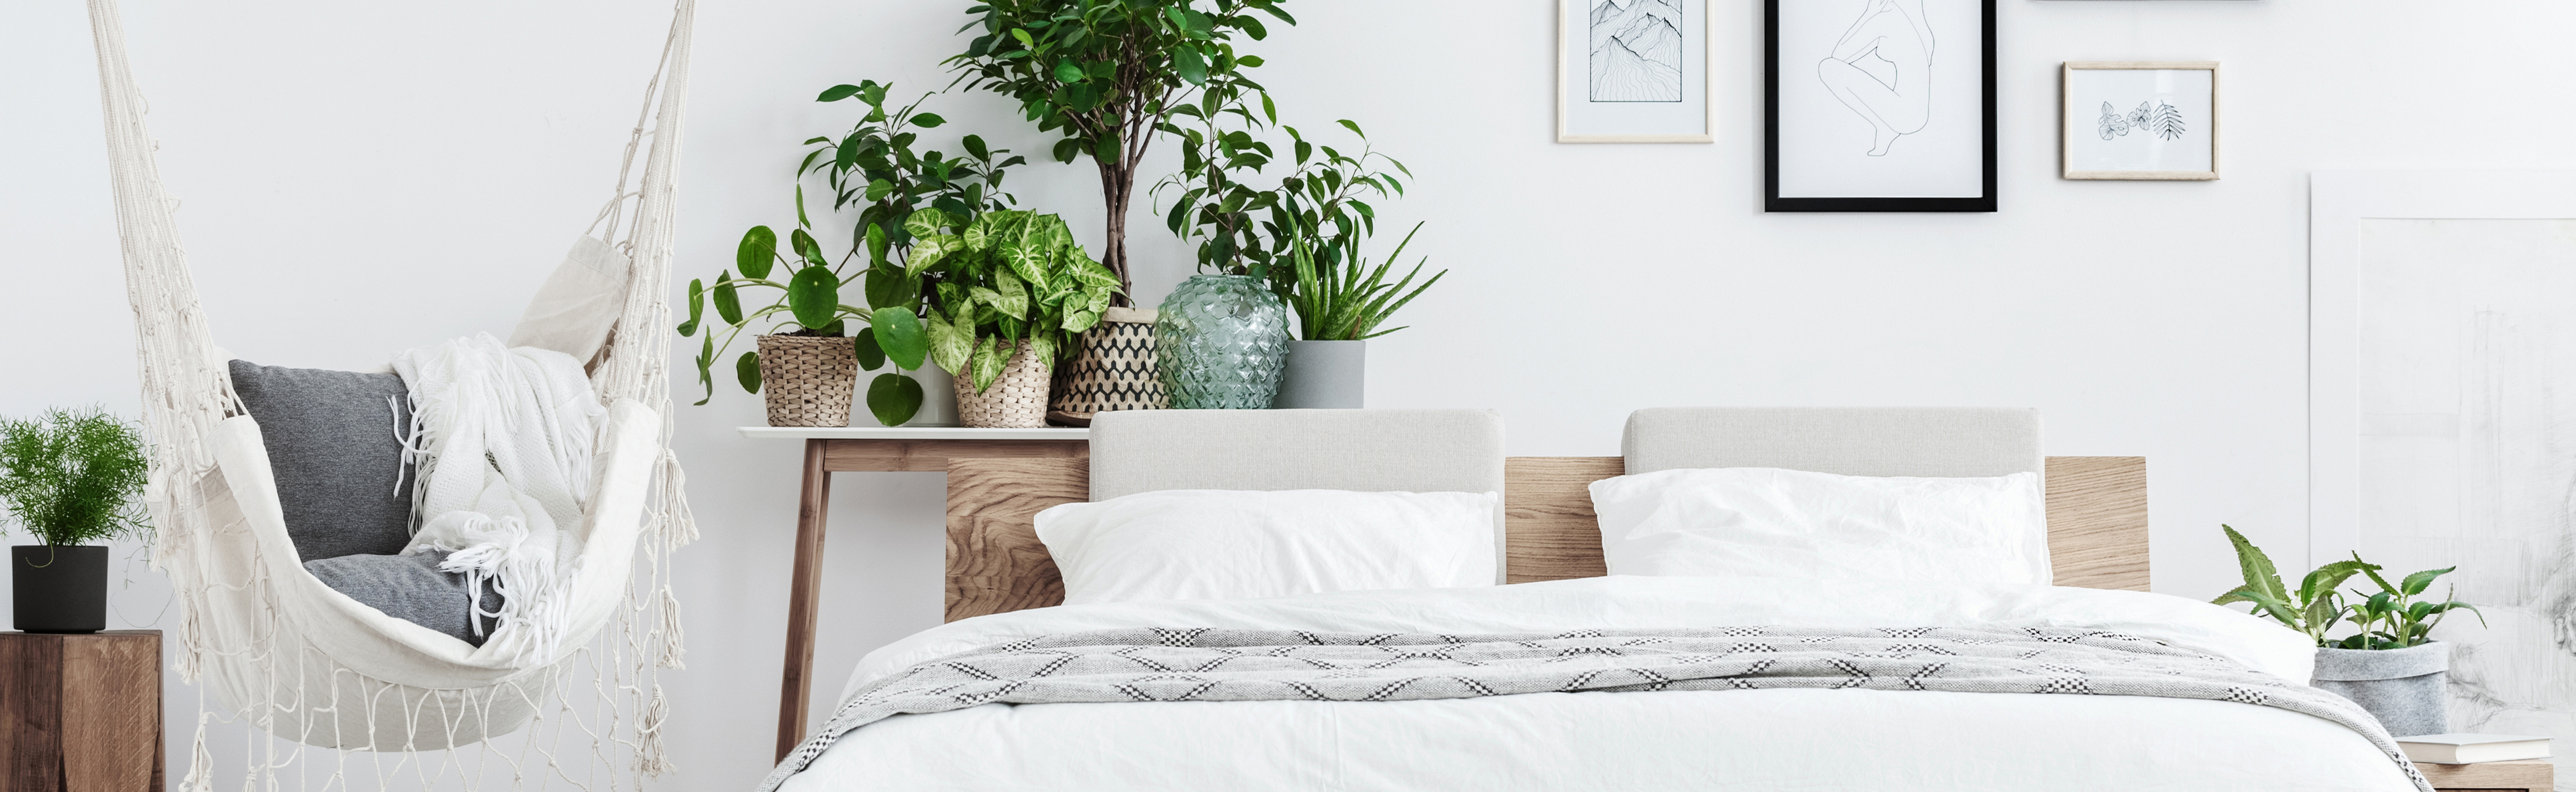 bed with plants